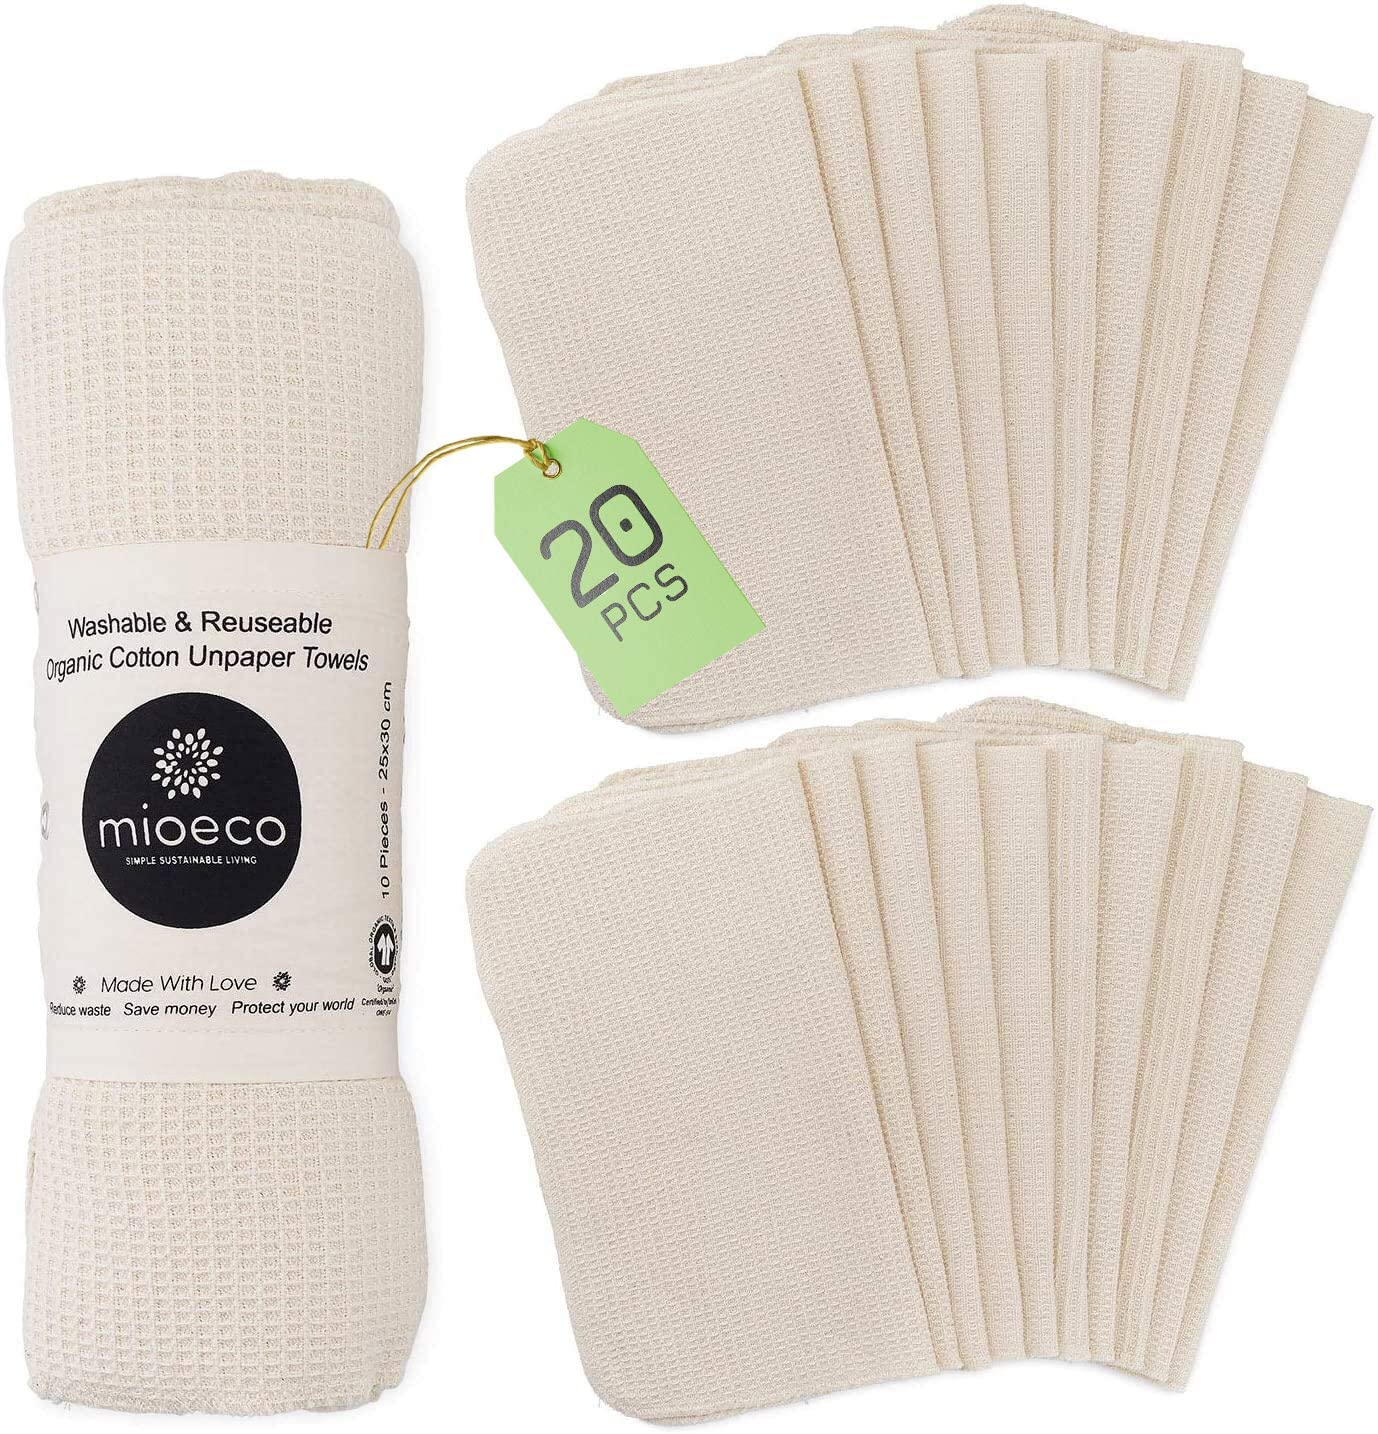 mioeco reusable unpaper bamboo washable towels isolated on white background